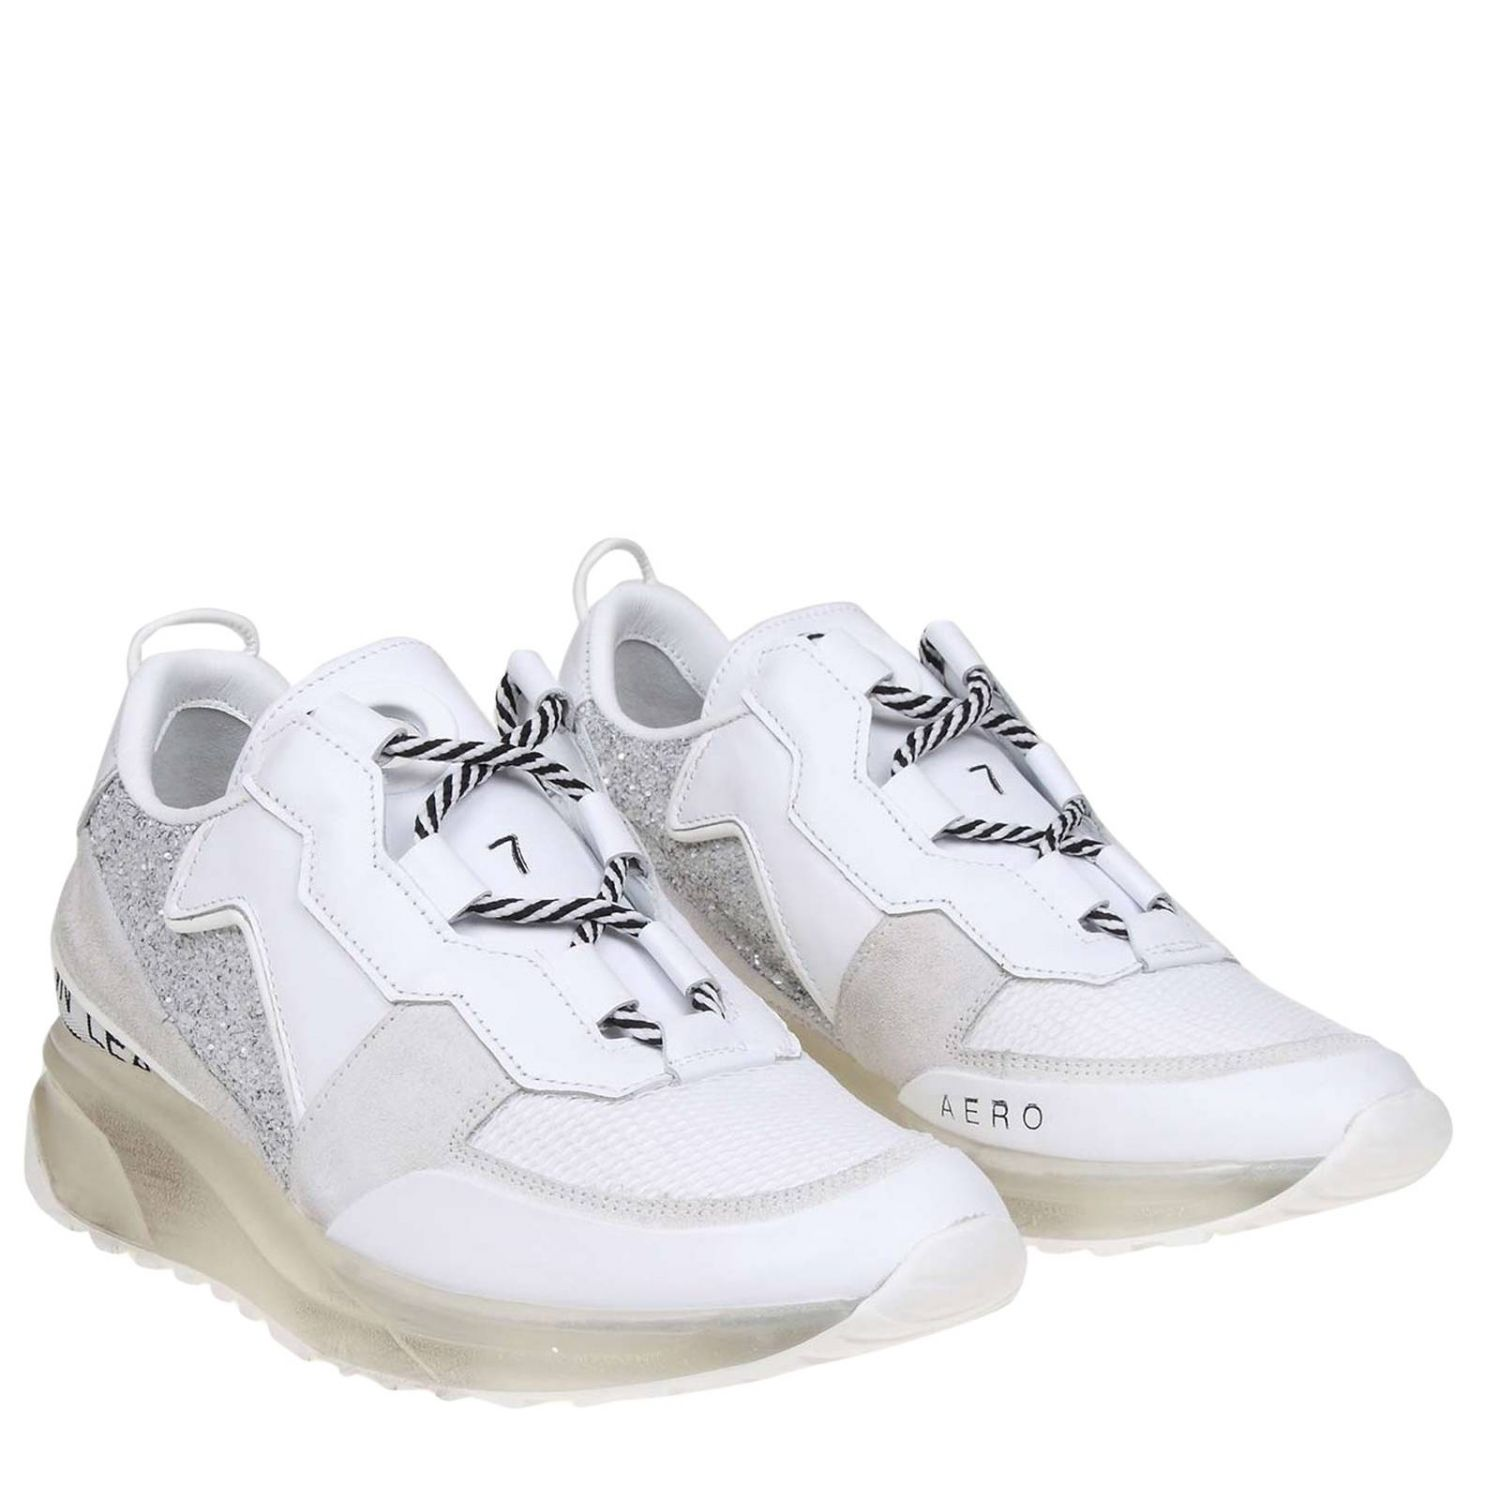 Sneakers women Leather Crown white 2